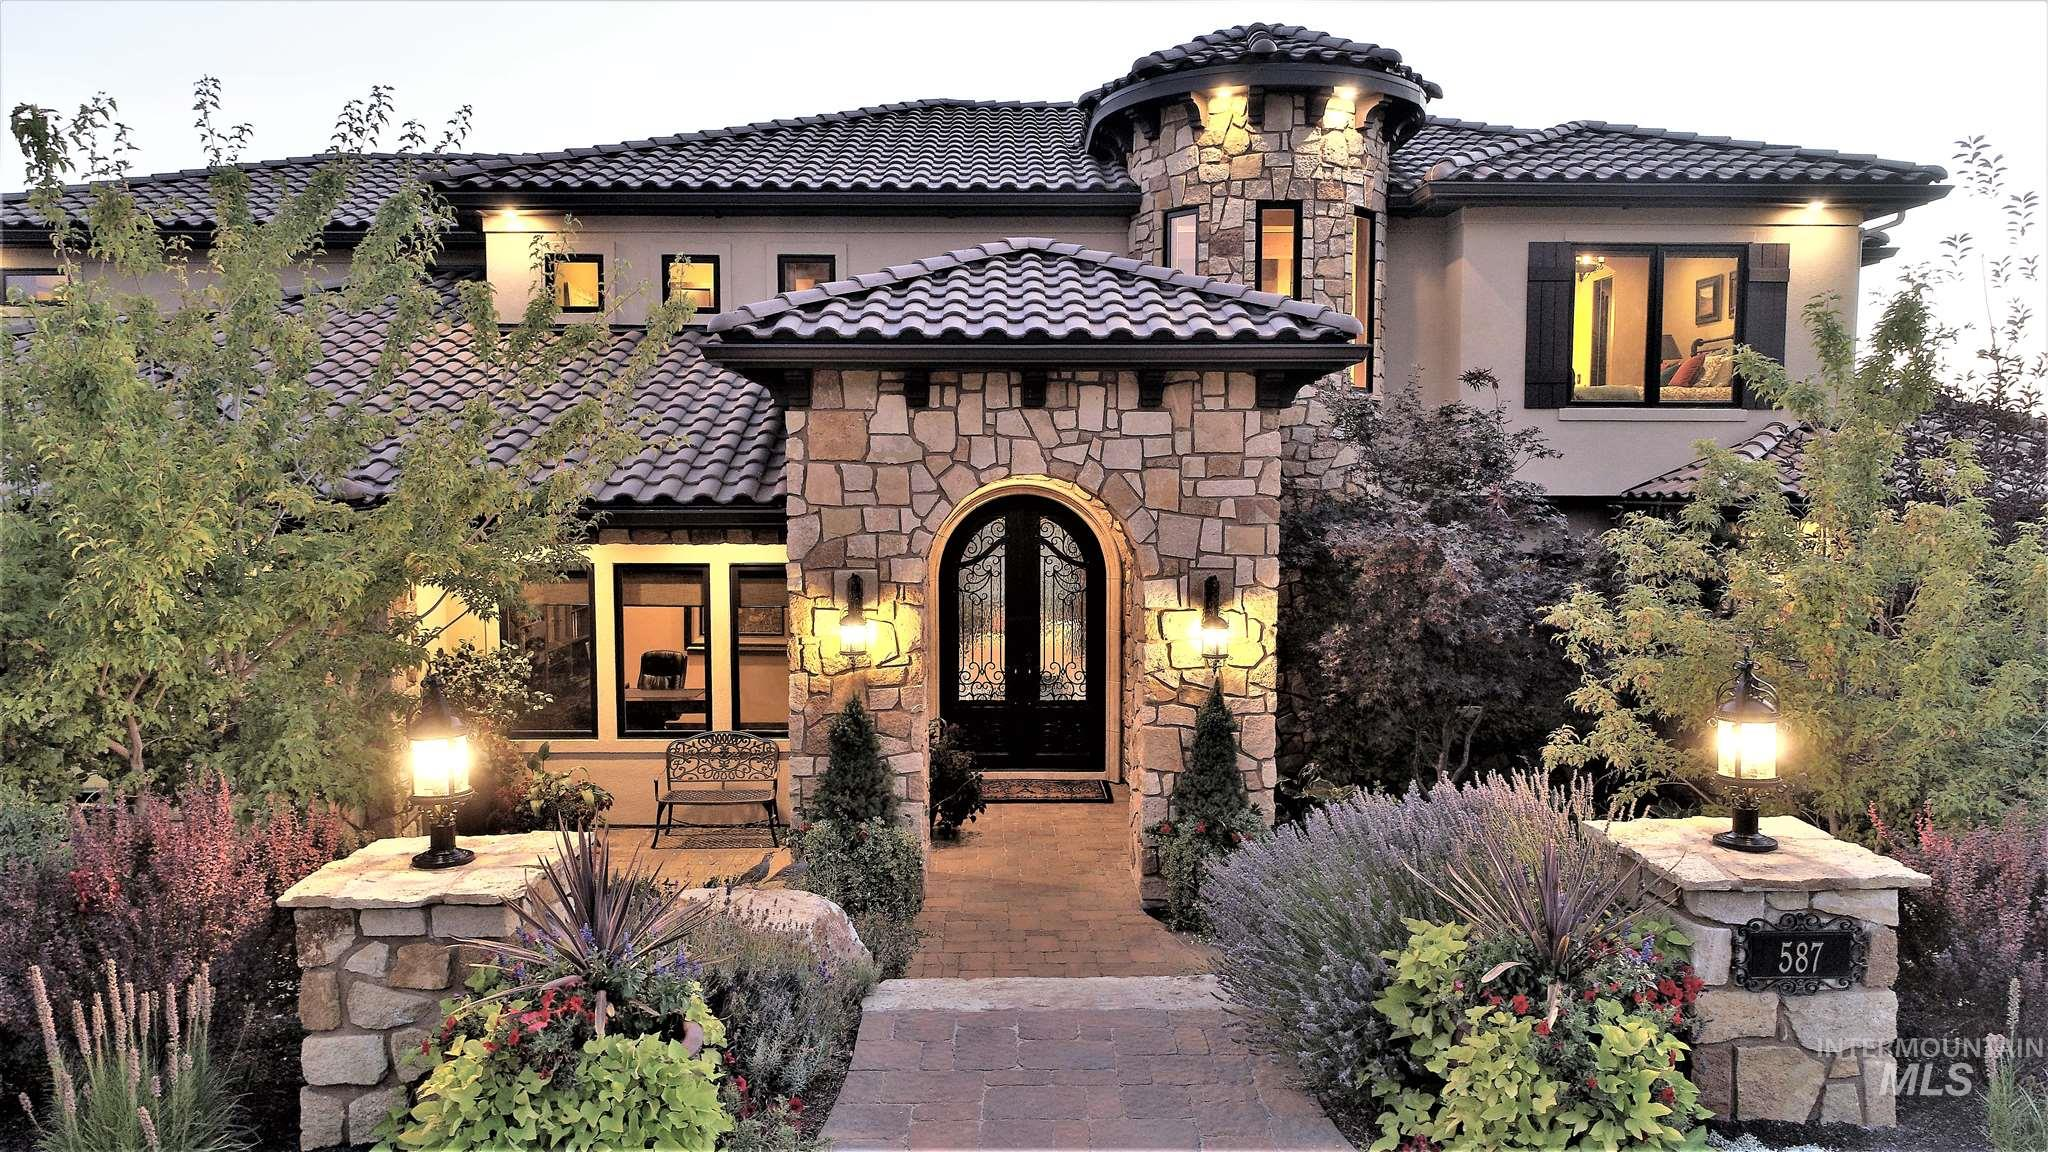 This Tuscan influenced home exudes Elegance & Fine Craftsmanship at every turn. From the Grand Entry & the carefully designed floor plan to the large Back Patio with a BBQ & Jacuzzi. Finishes include exquisite custom woodwork, Natural Stone & fine architectural details throughout. Situated on a Premium foothills lot, the Home has been designed with every detail in mind including taking advantage of the beautiful views & a venue for elegant or relaxed entertaining with a Private Wine Cellar. See the V Tour !